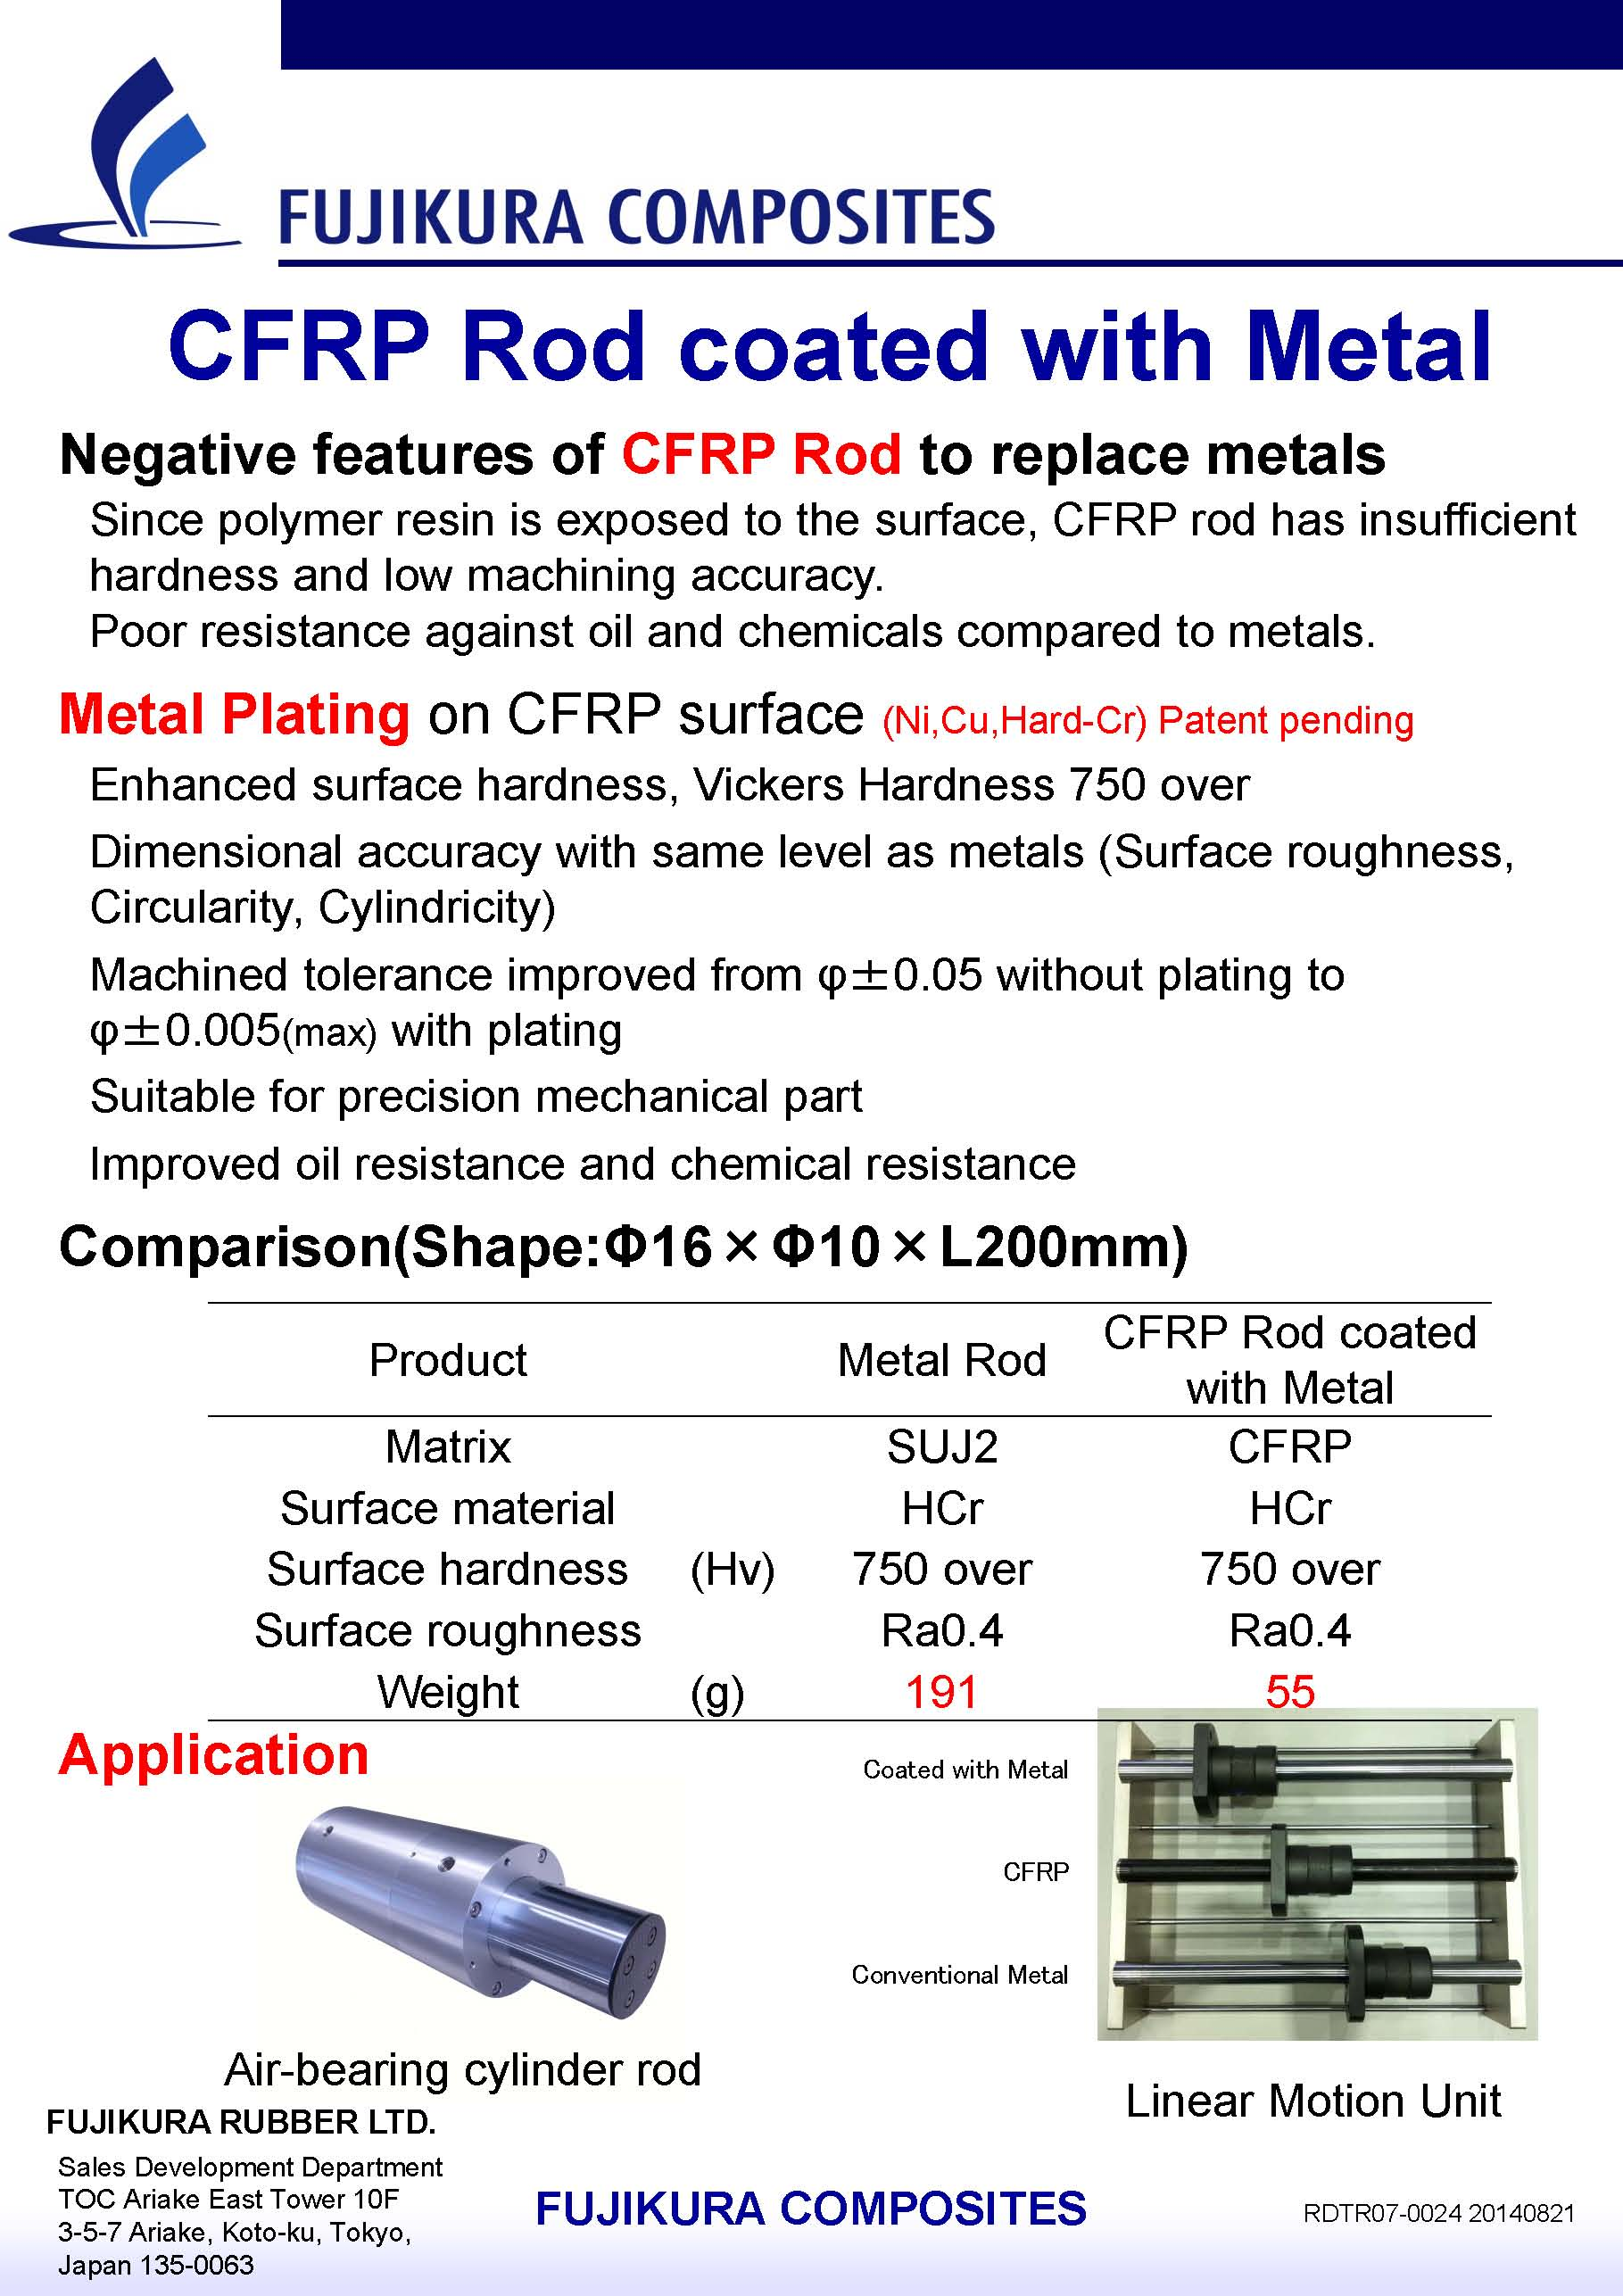 CFRP Rod coated with Metal